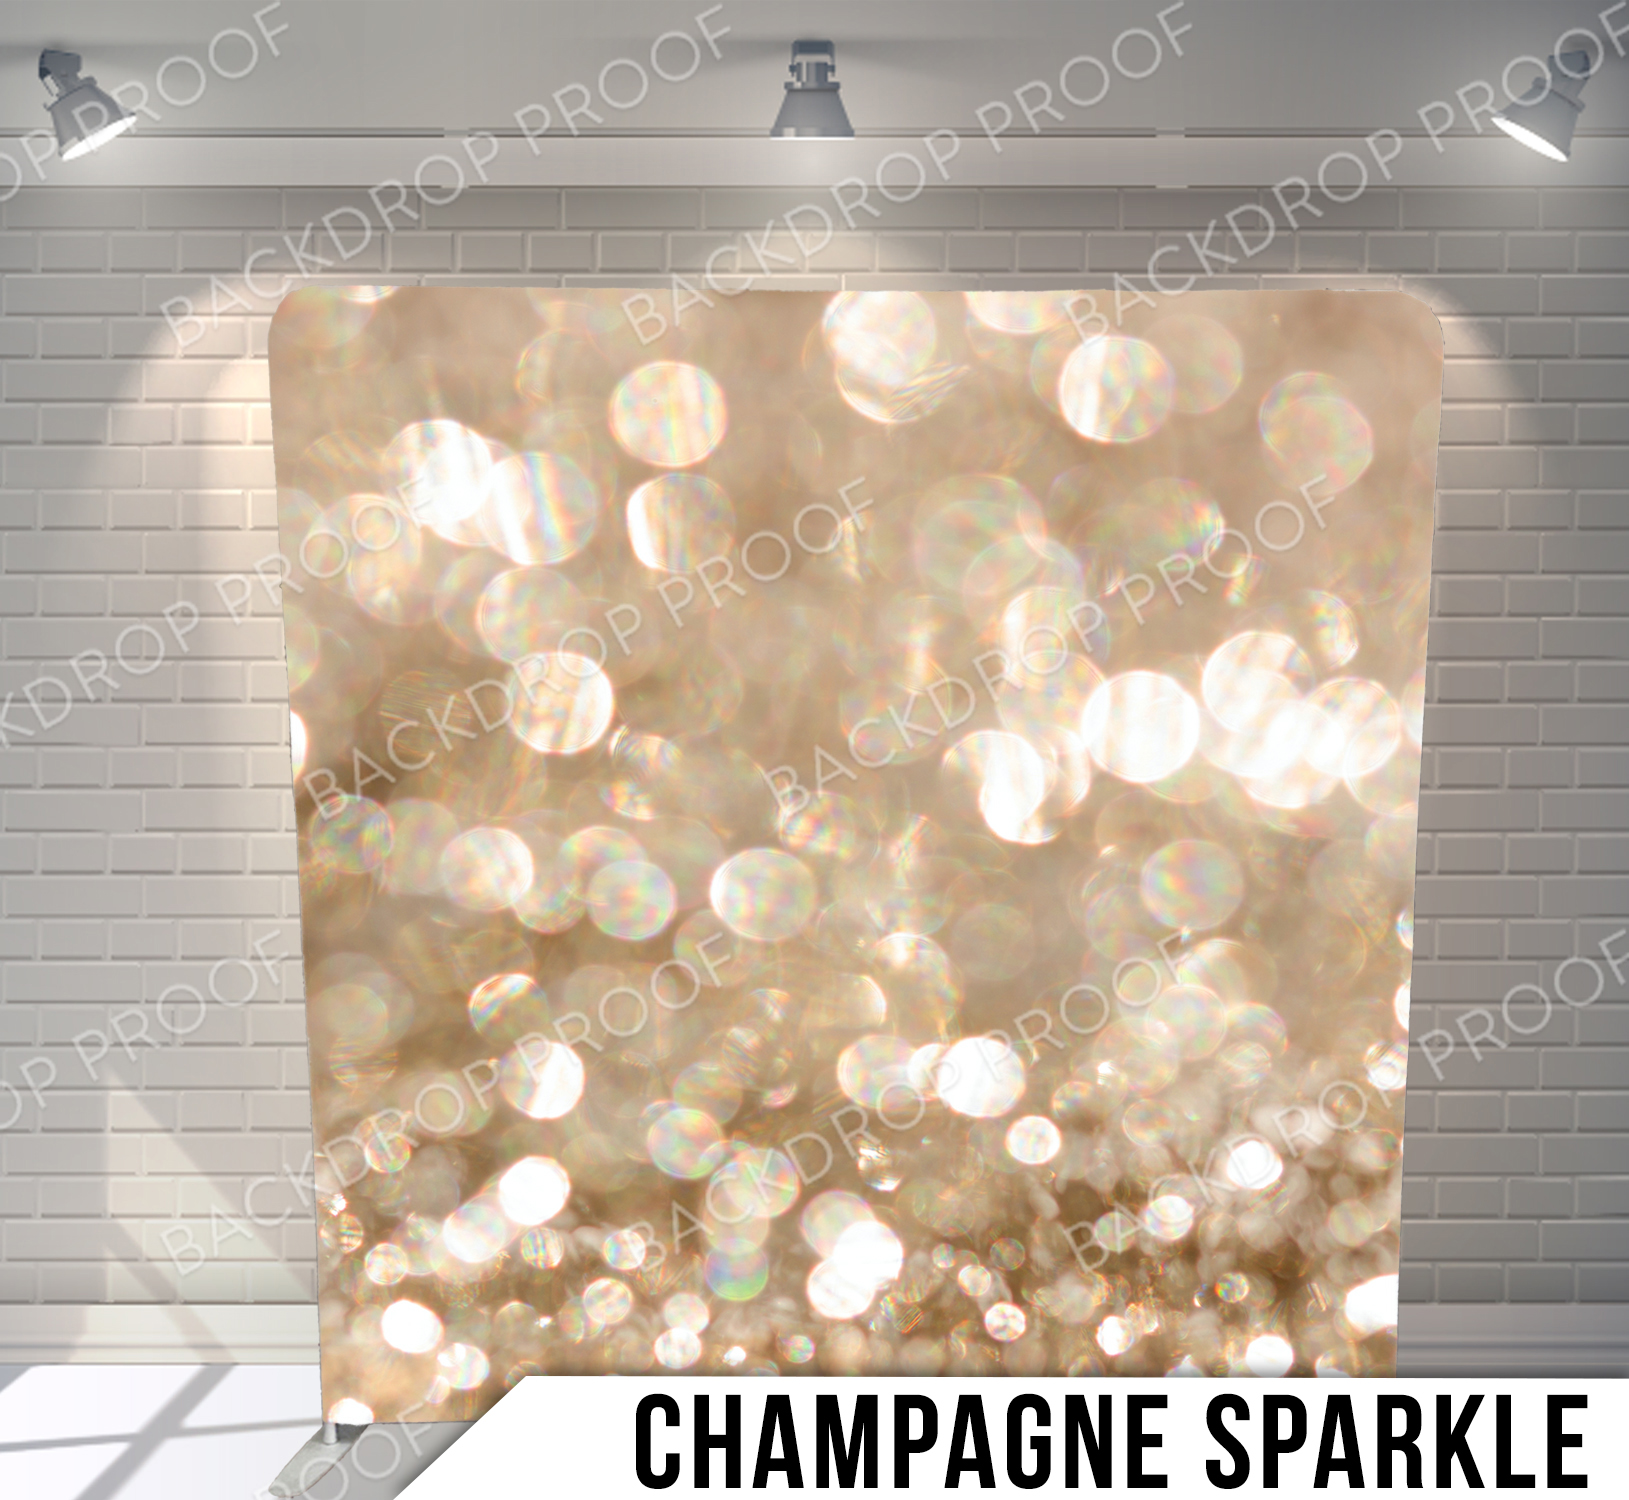 Pillow_CHAMPAGNESPARKLE_G.jpg